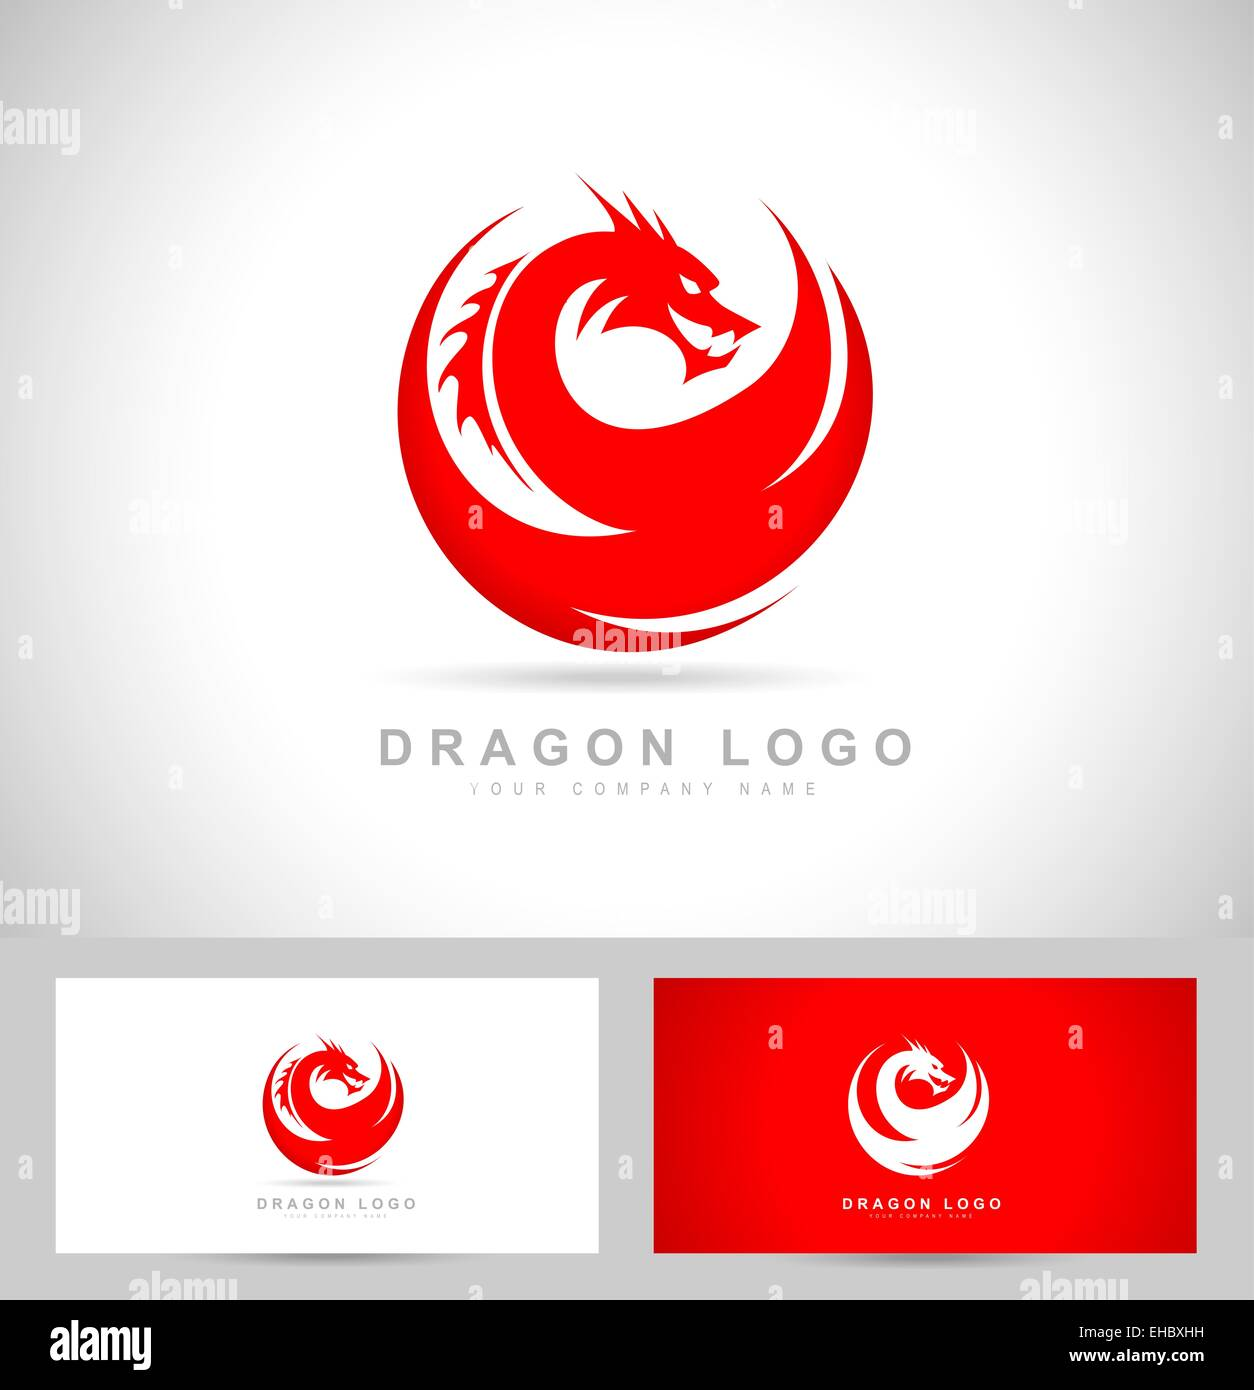 Dragon logo vector with red colors and business card template stock dragon logo vector with red colors and business card template colourmoves